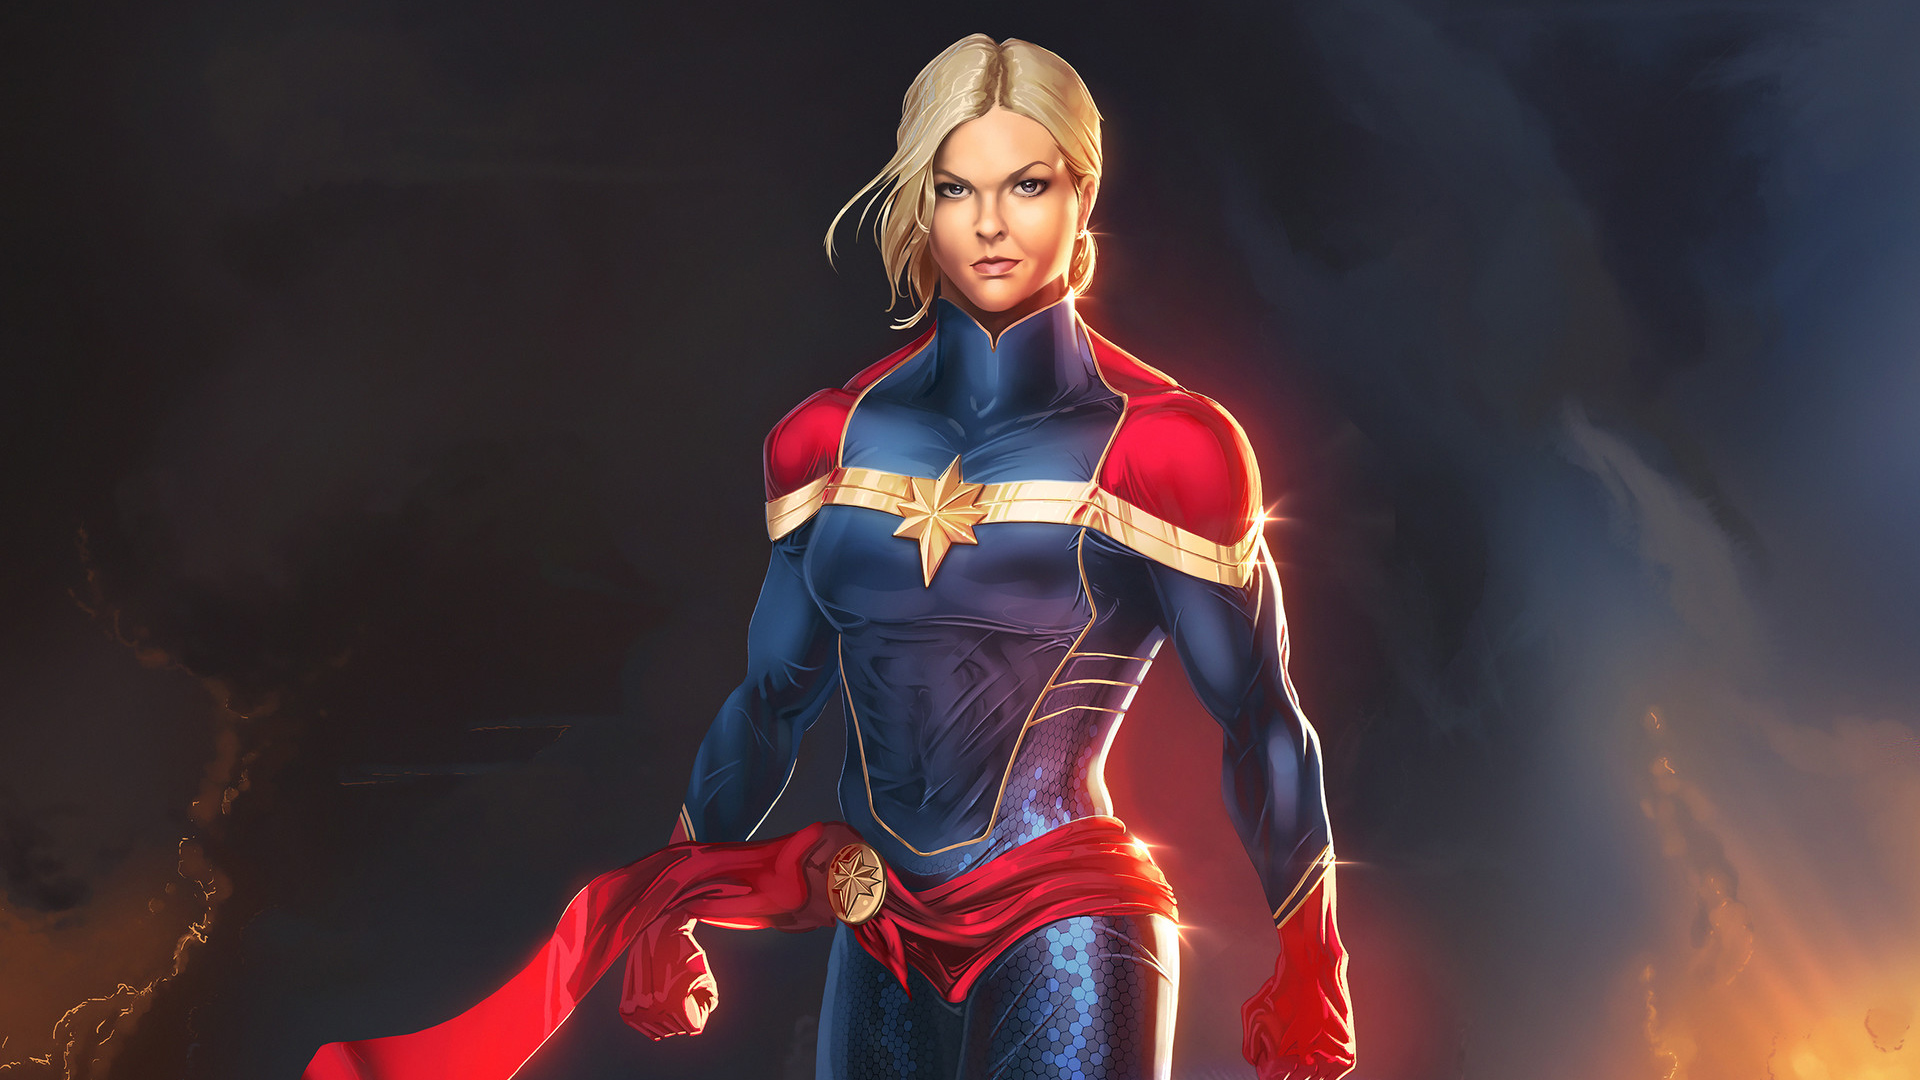 Captain Marvel Hd Wallpaper Background Image 1920x1080 Id